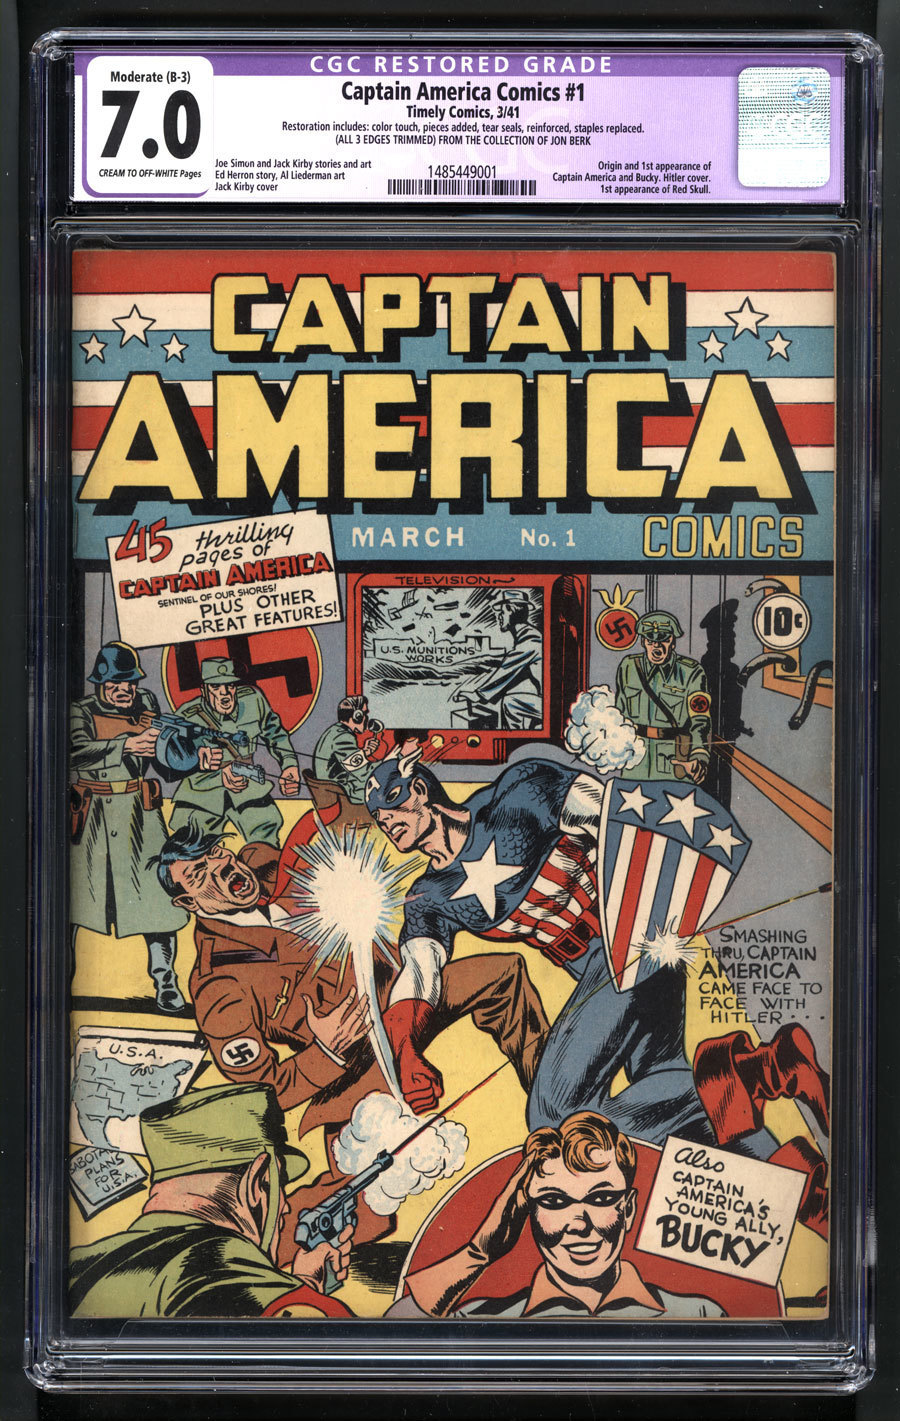 This undated photo provided on March 2, 2017 by Metropolis Collectibles in New York shows a copy of a rare 1941 No. 1 Captain America Comics. The comic book is among those owned by Hartford, Conn., attorney John Berk to be auctioned on May 15. (Jon Berk/Metropolis Collectibles via AP)